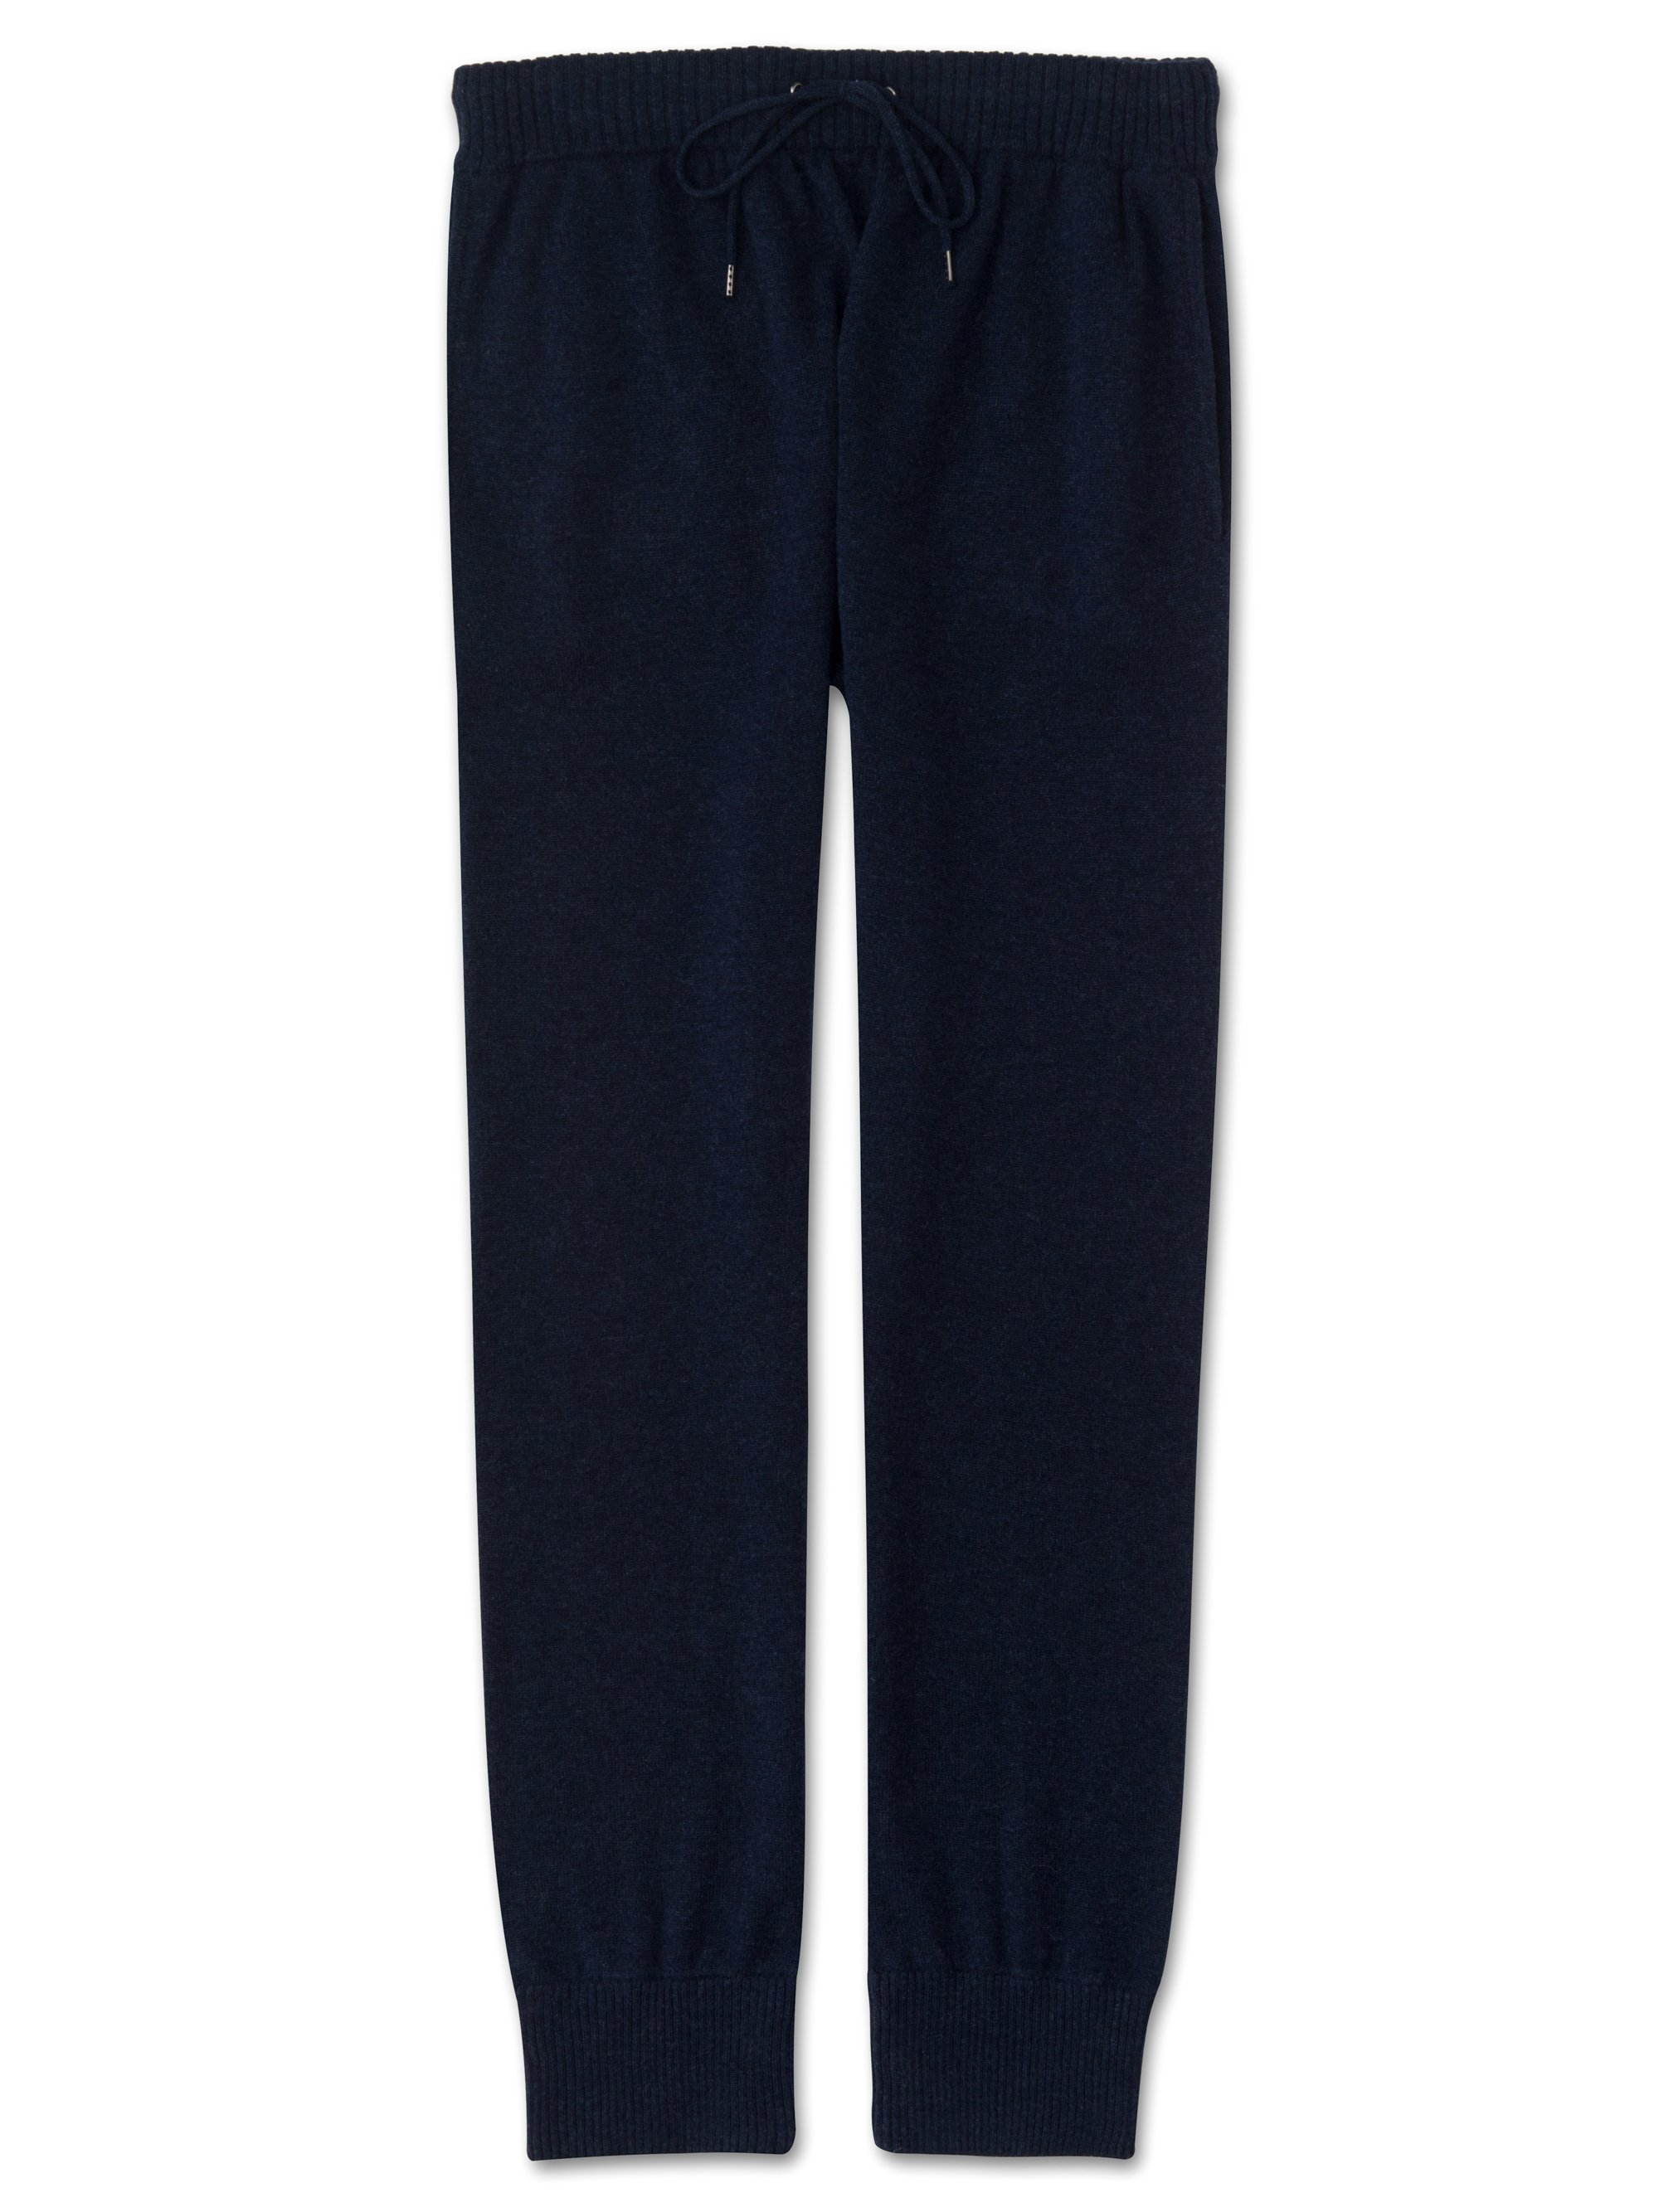 Men's Cashmere Track Pants Finley Pure Cashmere Midnight